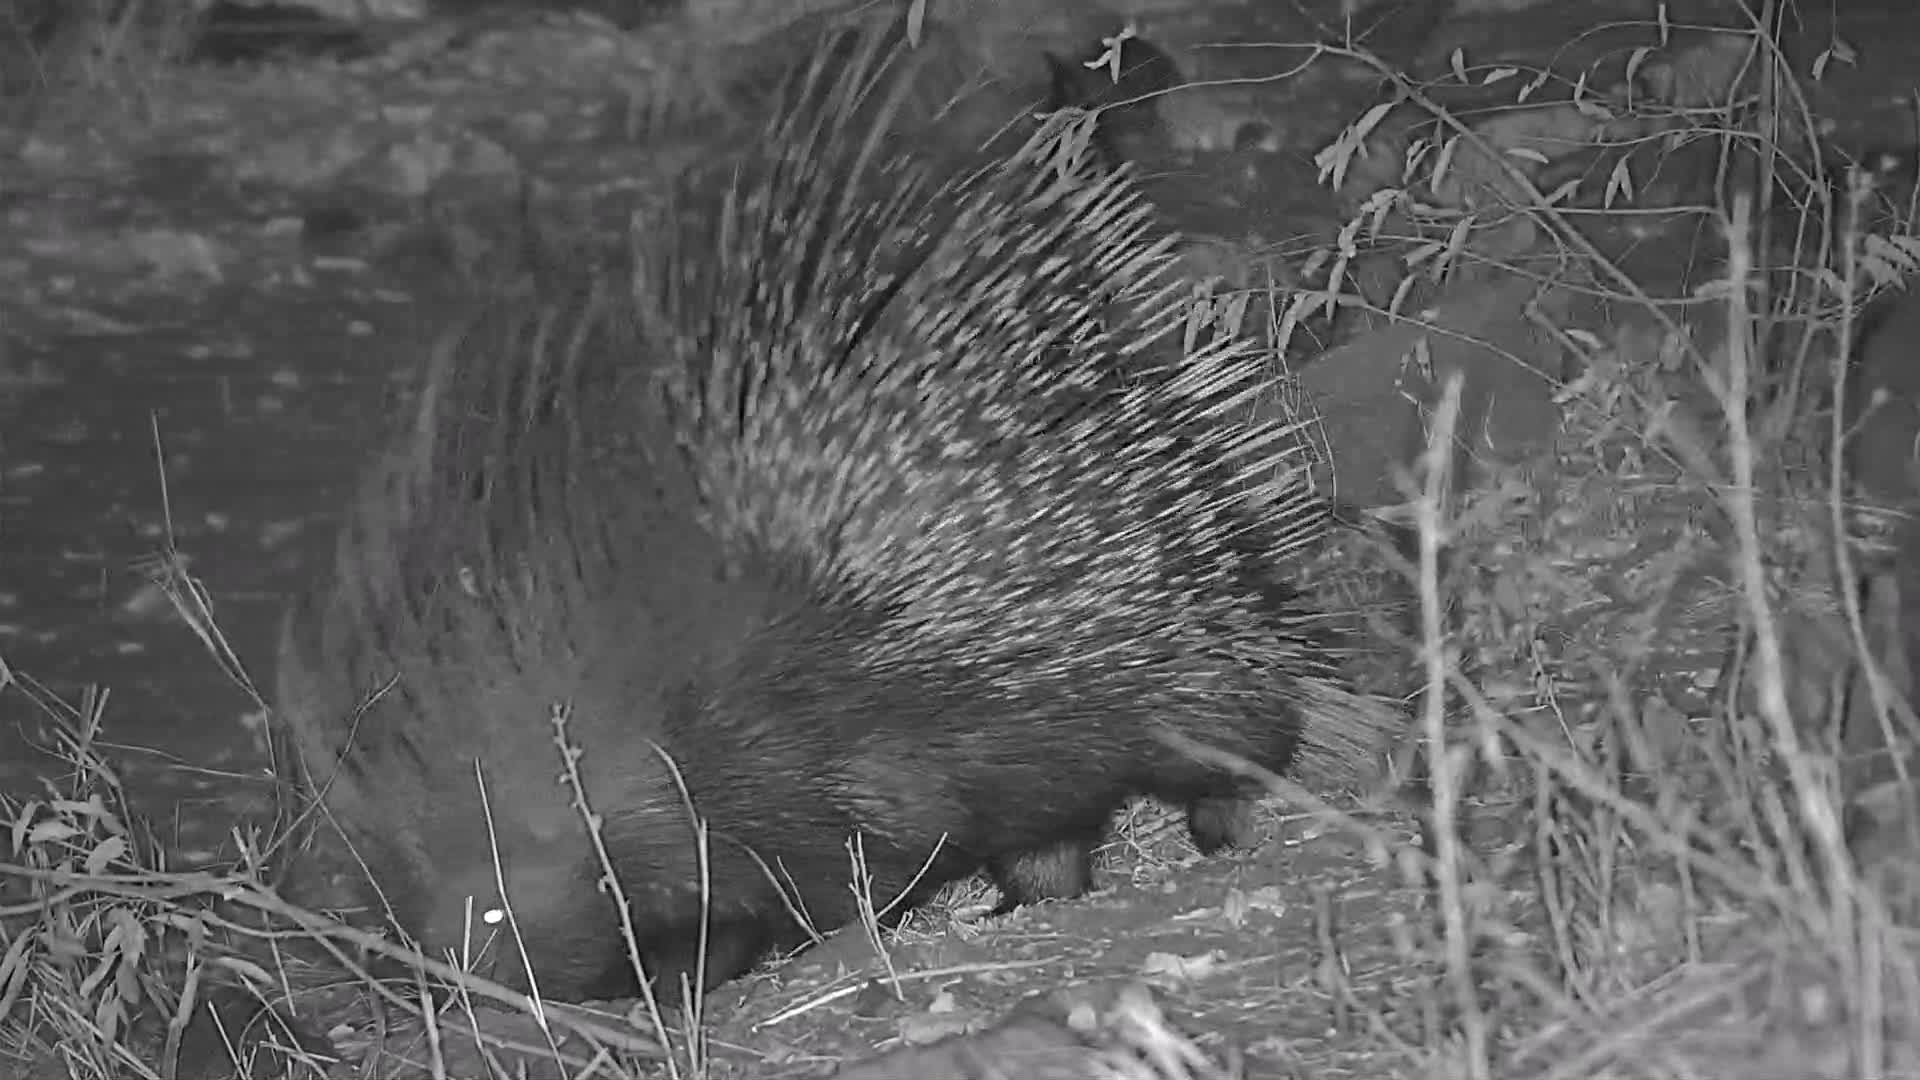 VIDEO: Porcupine foraging  for food